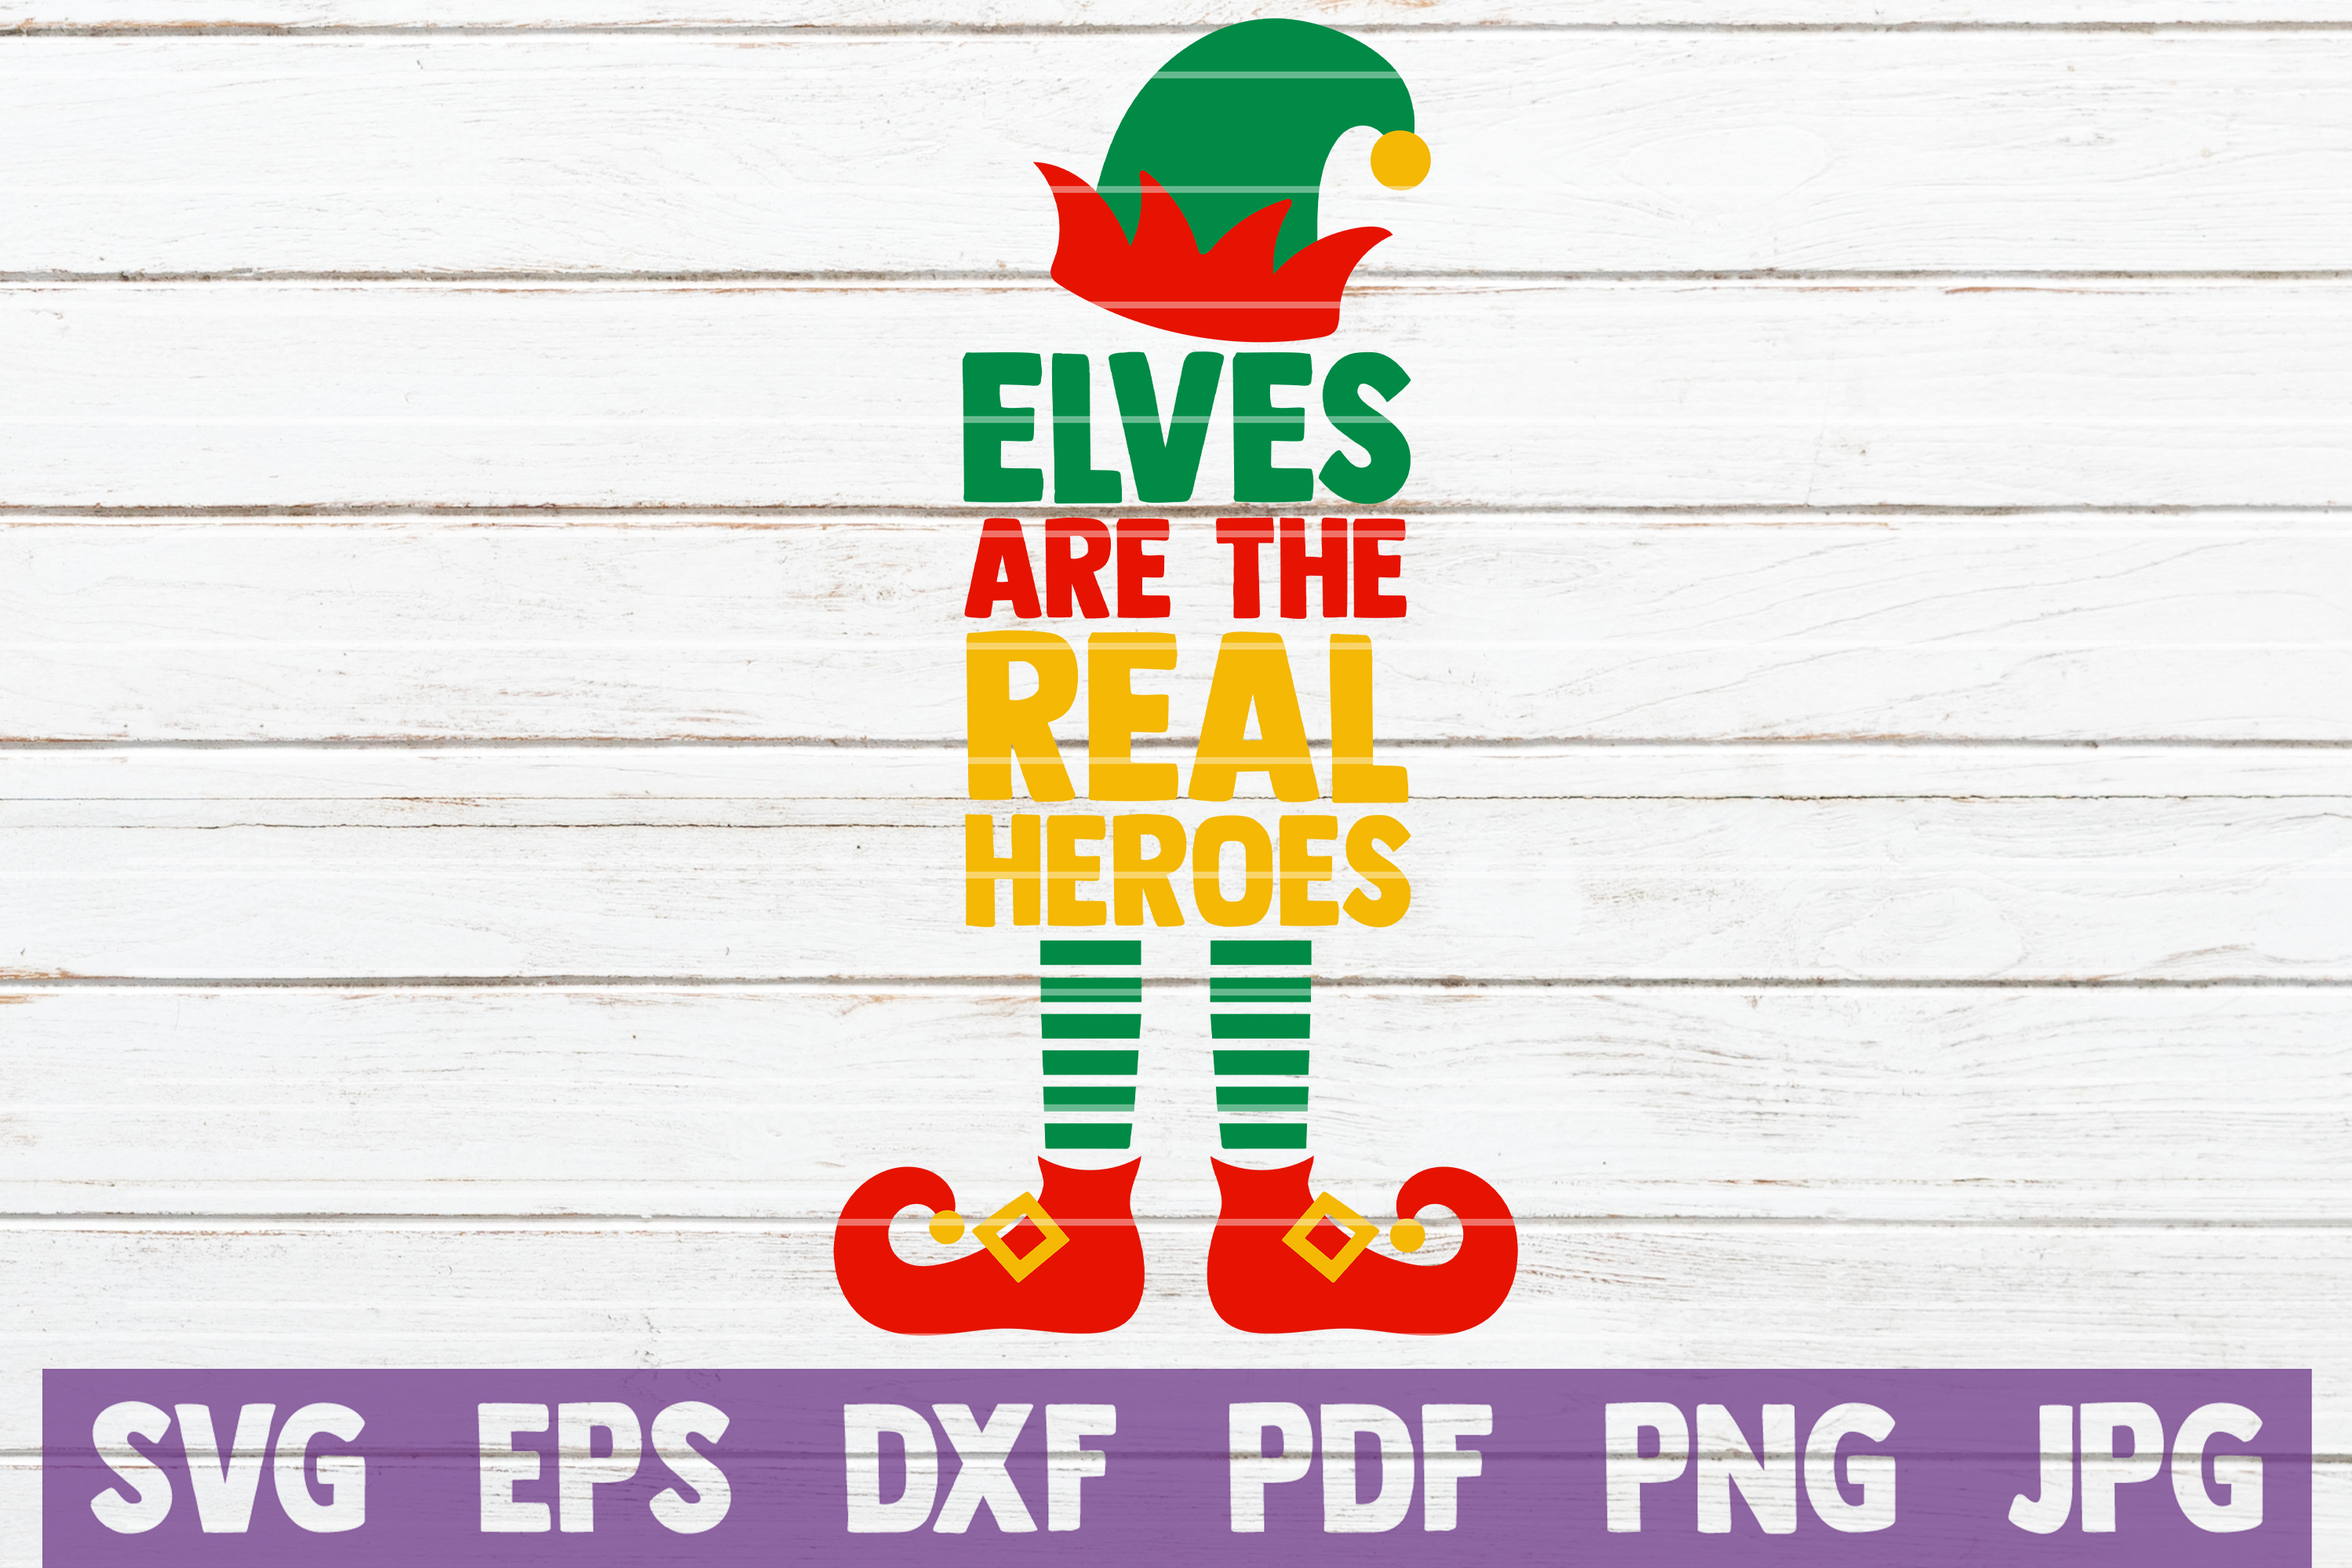 Elves Are The Real Heroes SVG Cut File example image 1